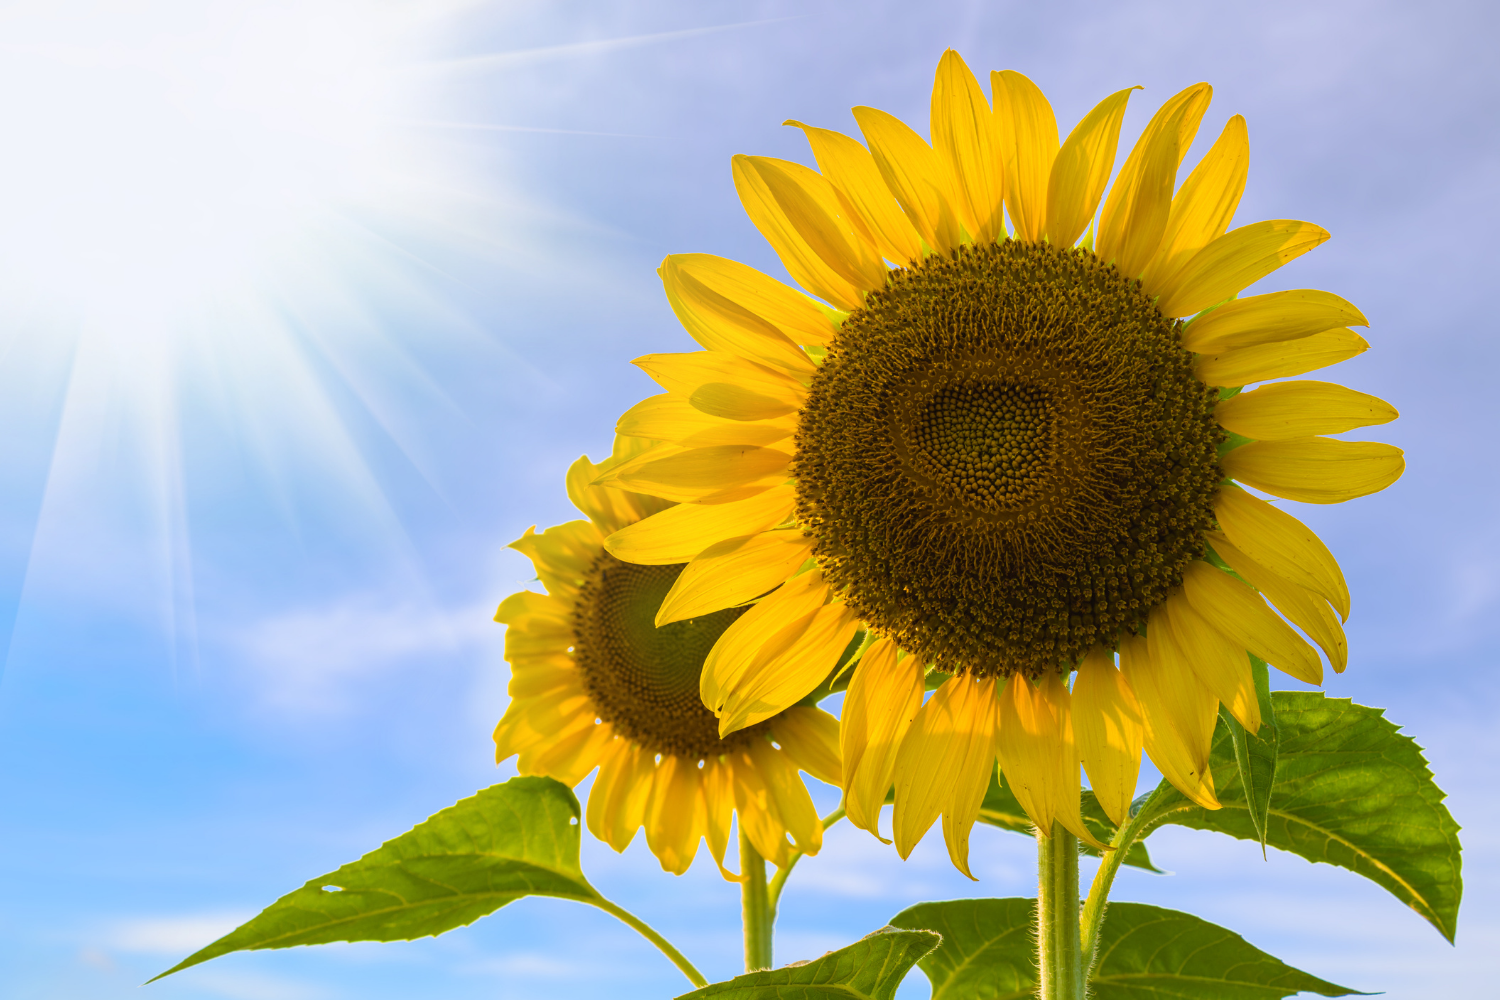 Sunflowers help with mental well-being